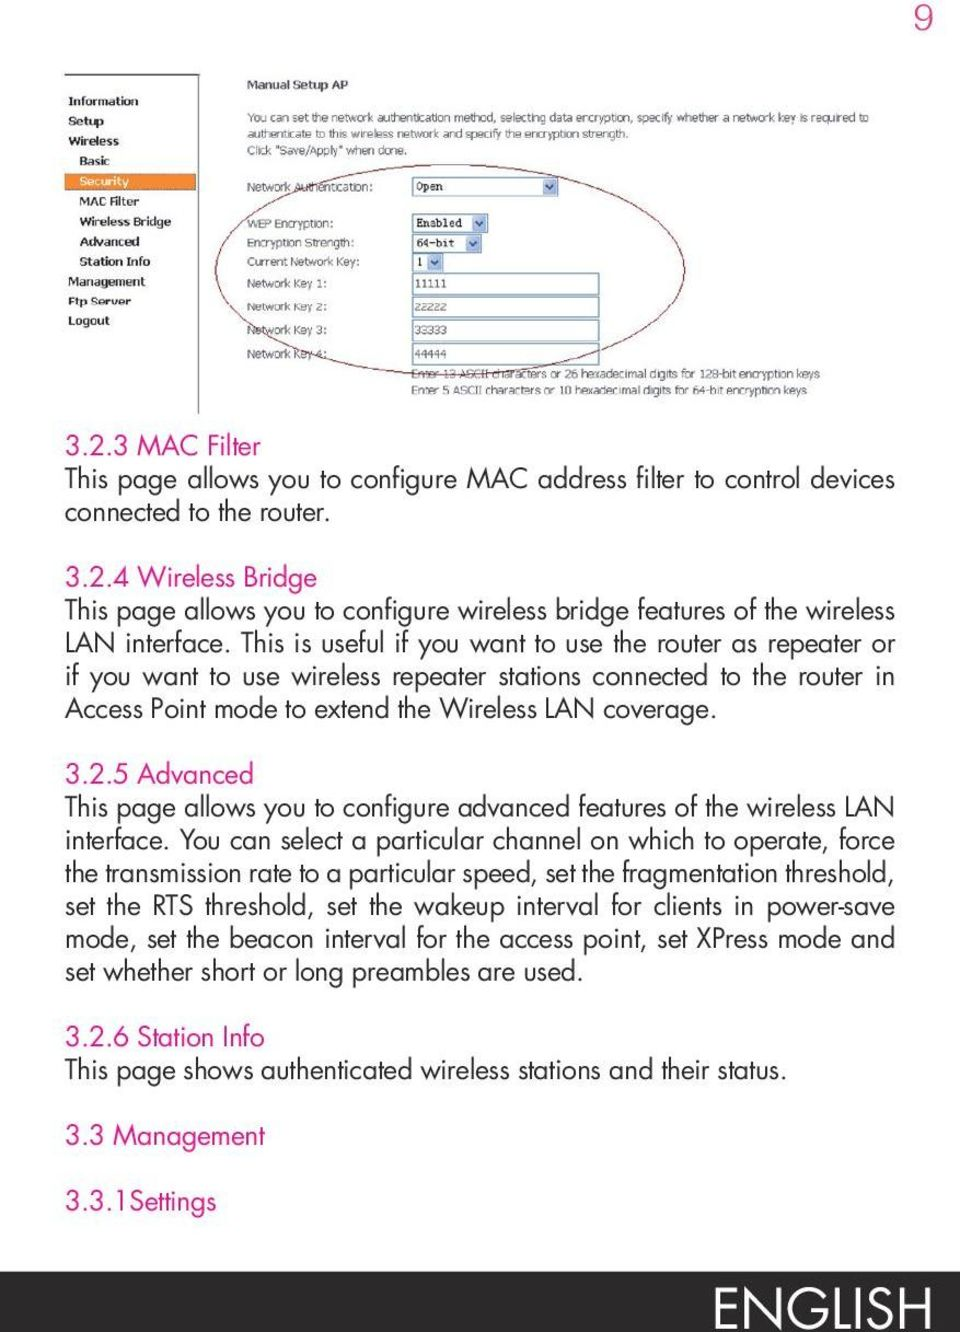 5 Advanced This page allows you to configure advanced features of the wireless LAN interface.